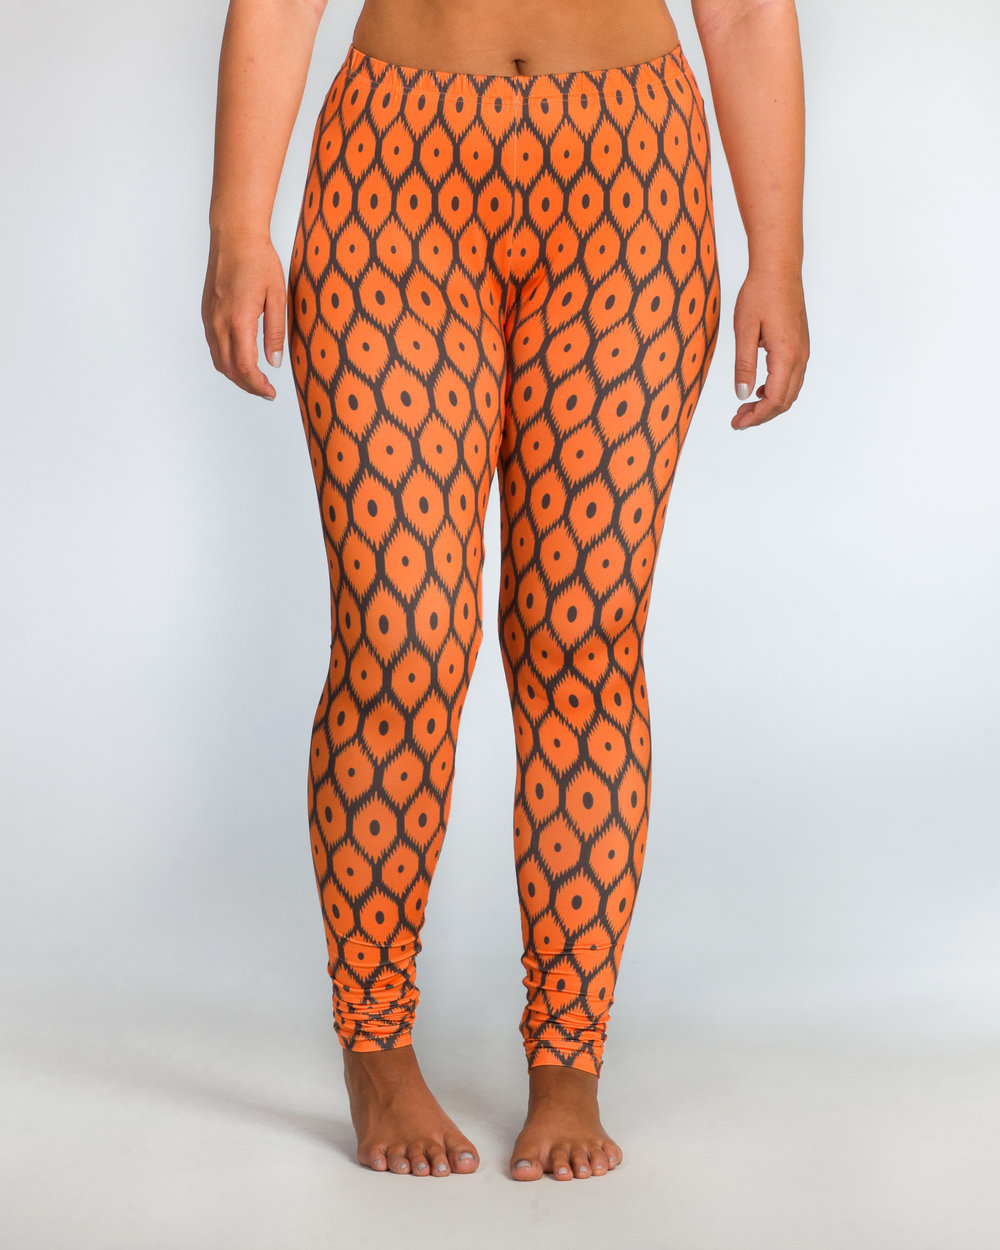 """Scoutis 5' 8"""" tall, has 33"""" hips, and chose a size XL in Tennessee Flamestitch Gameday Leggings"""